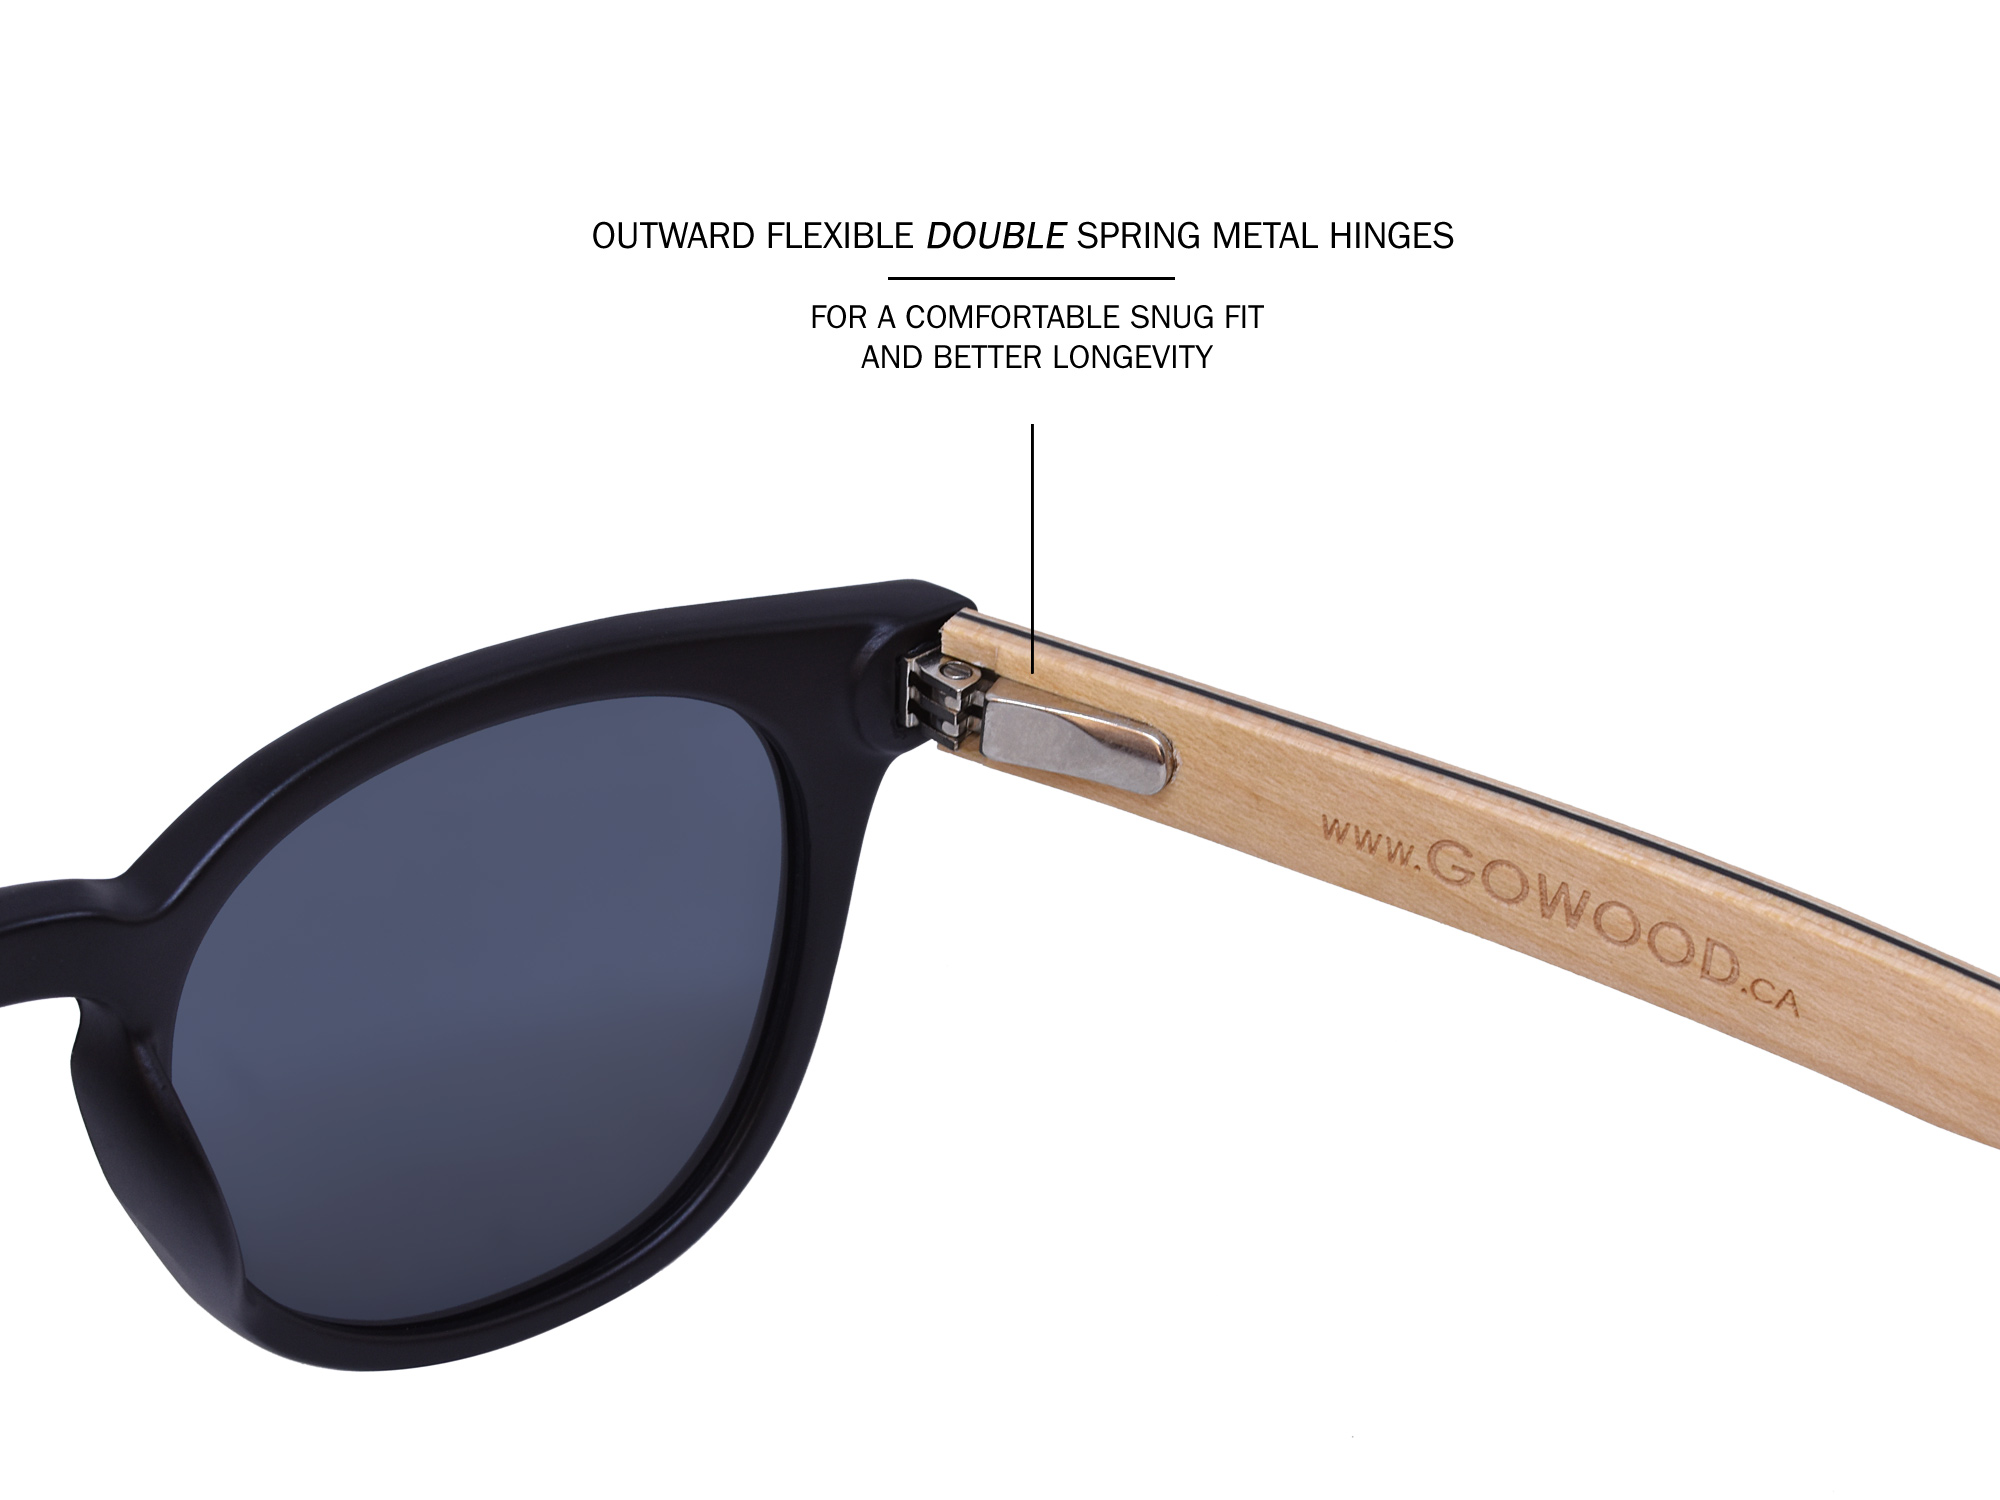 Round maple wood sunglasses hinge